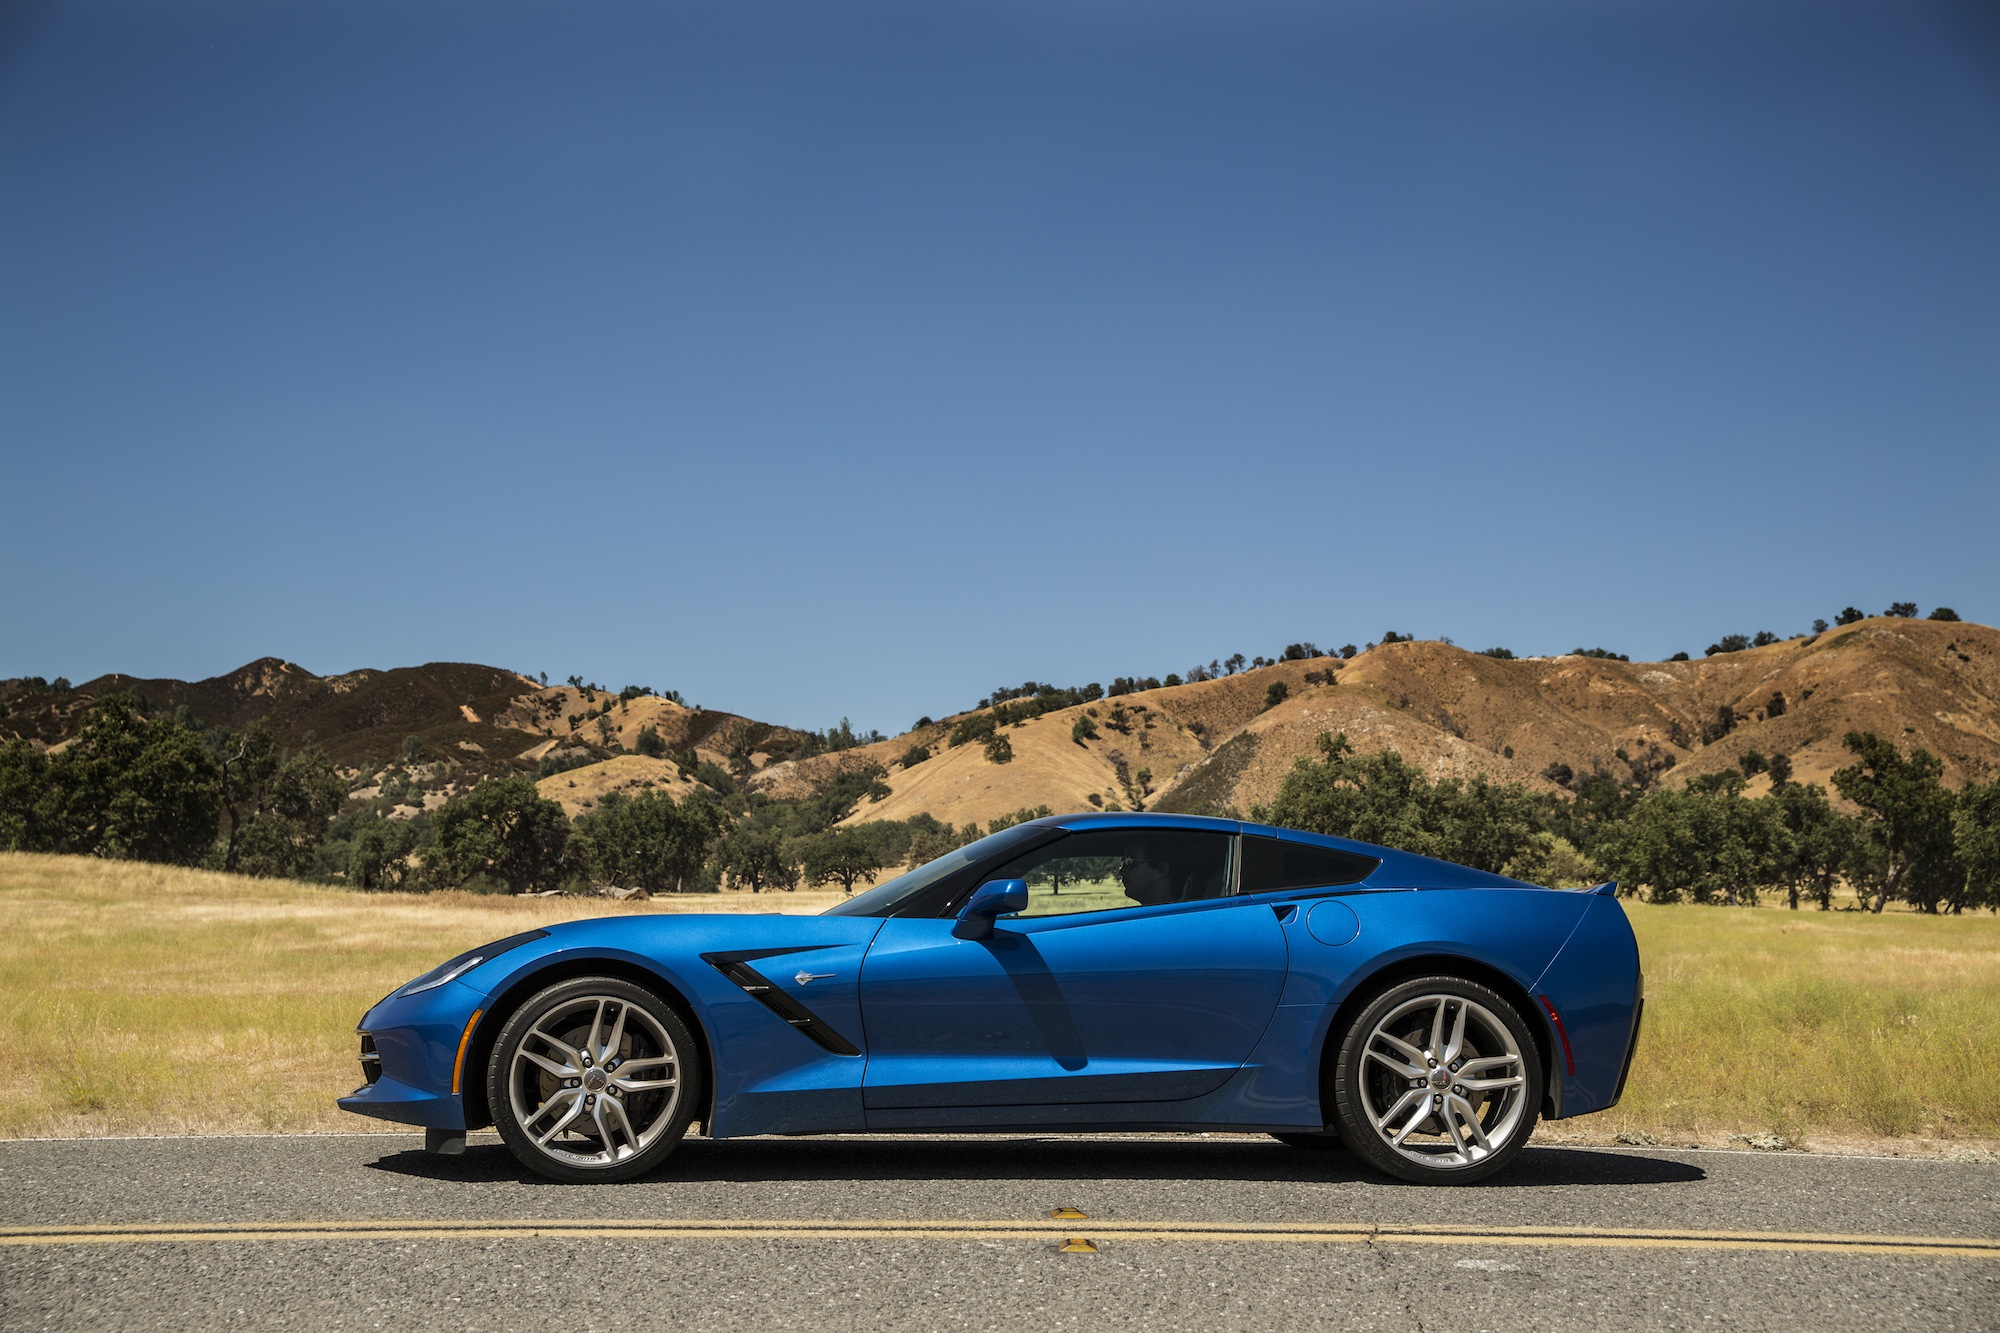 2014 Chevy Corvette Stingray Best Car To Buy 2014 Nominee